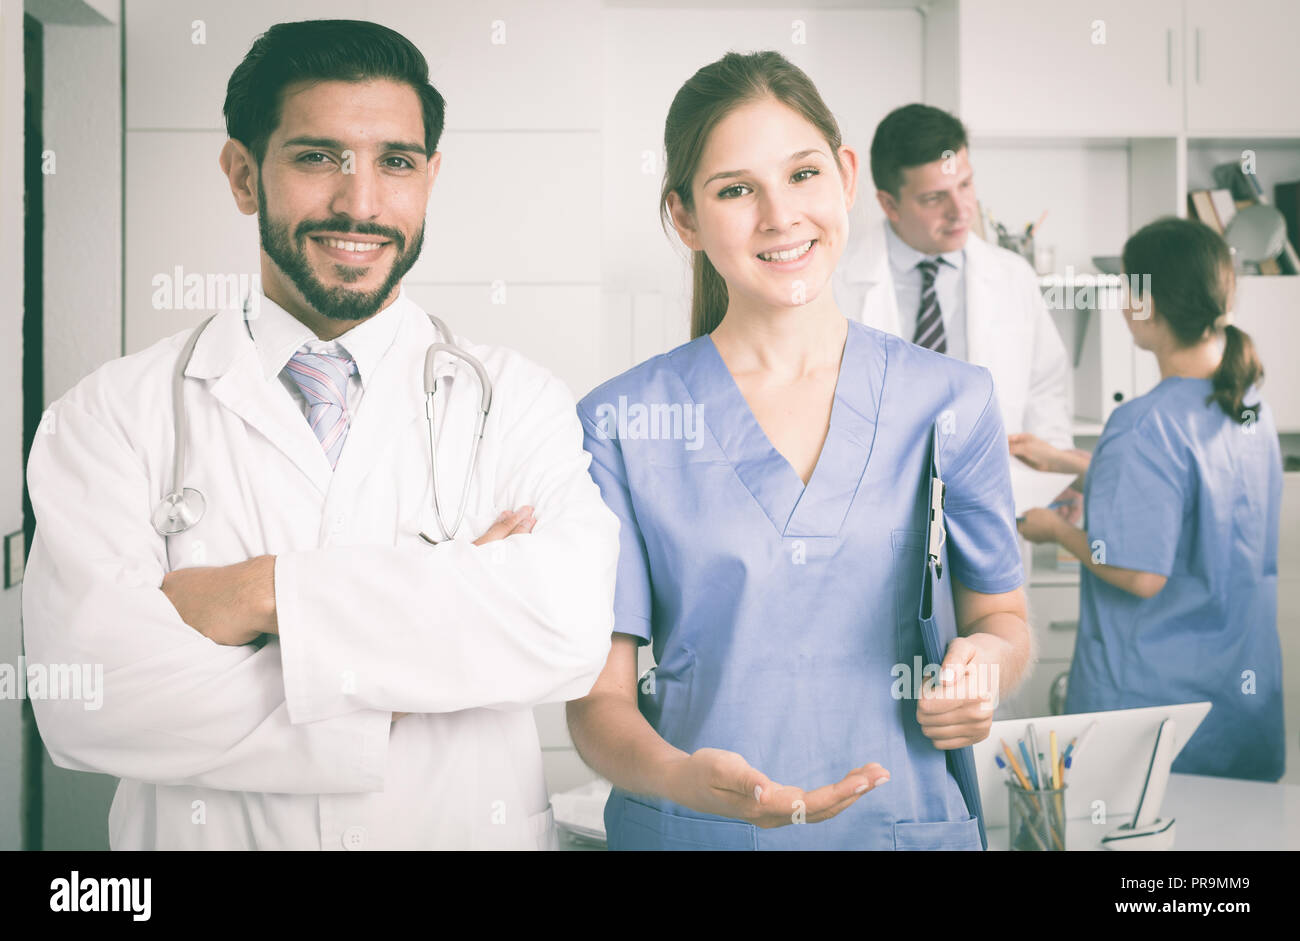 Portrait of young female doctor with male colleague inviting in clinic - Stock Image